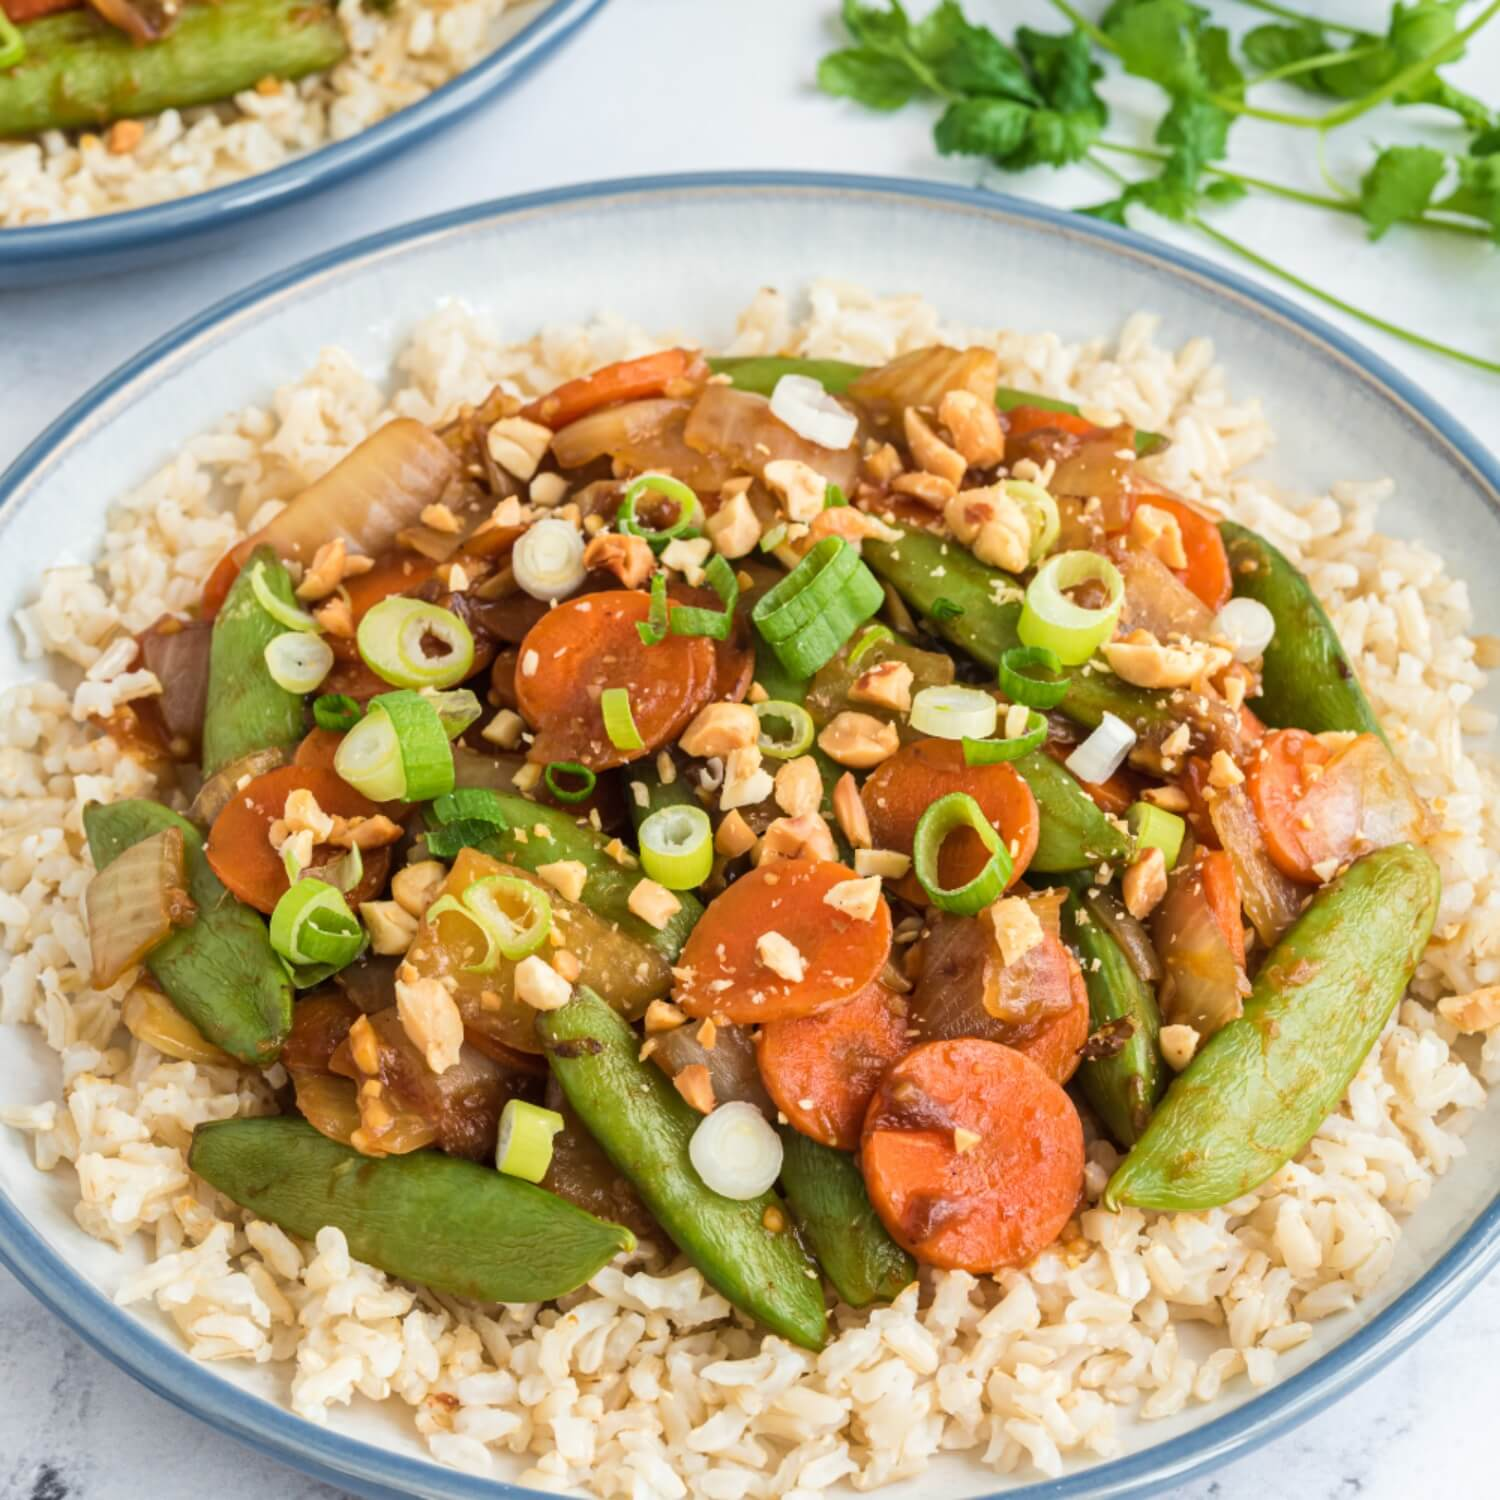 ginger stir-fry snow peas and carrots